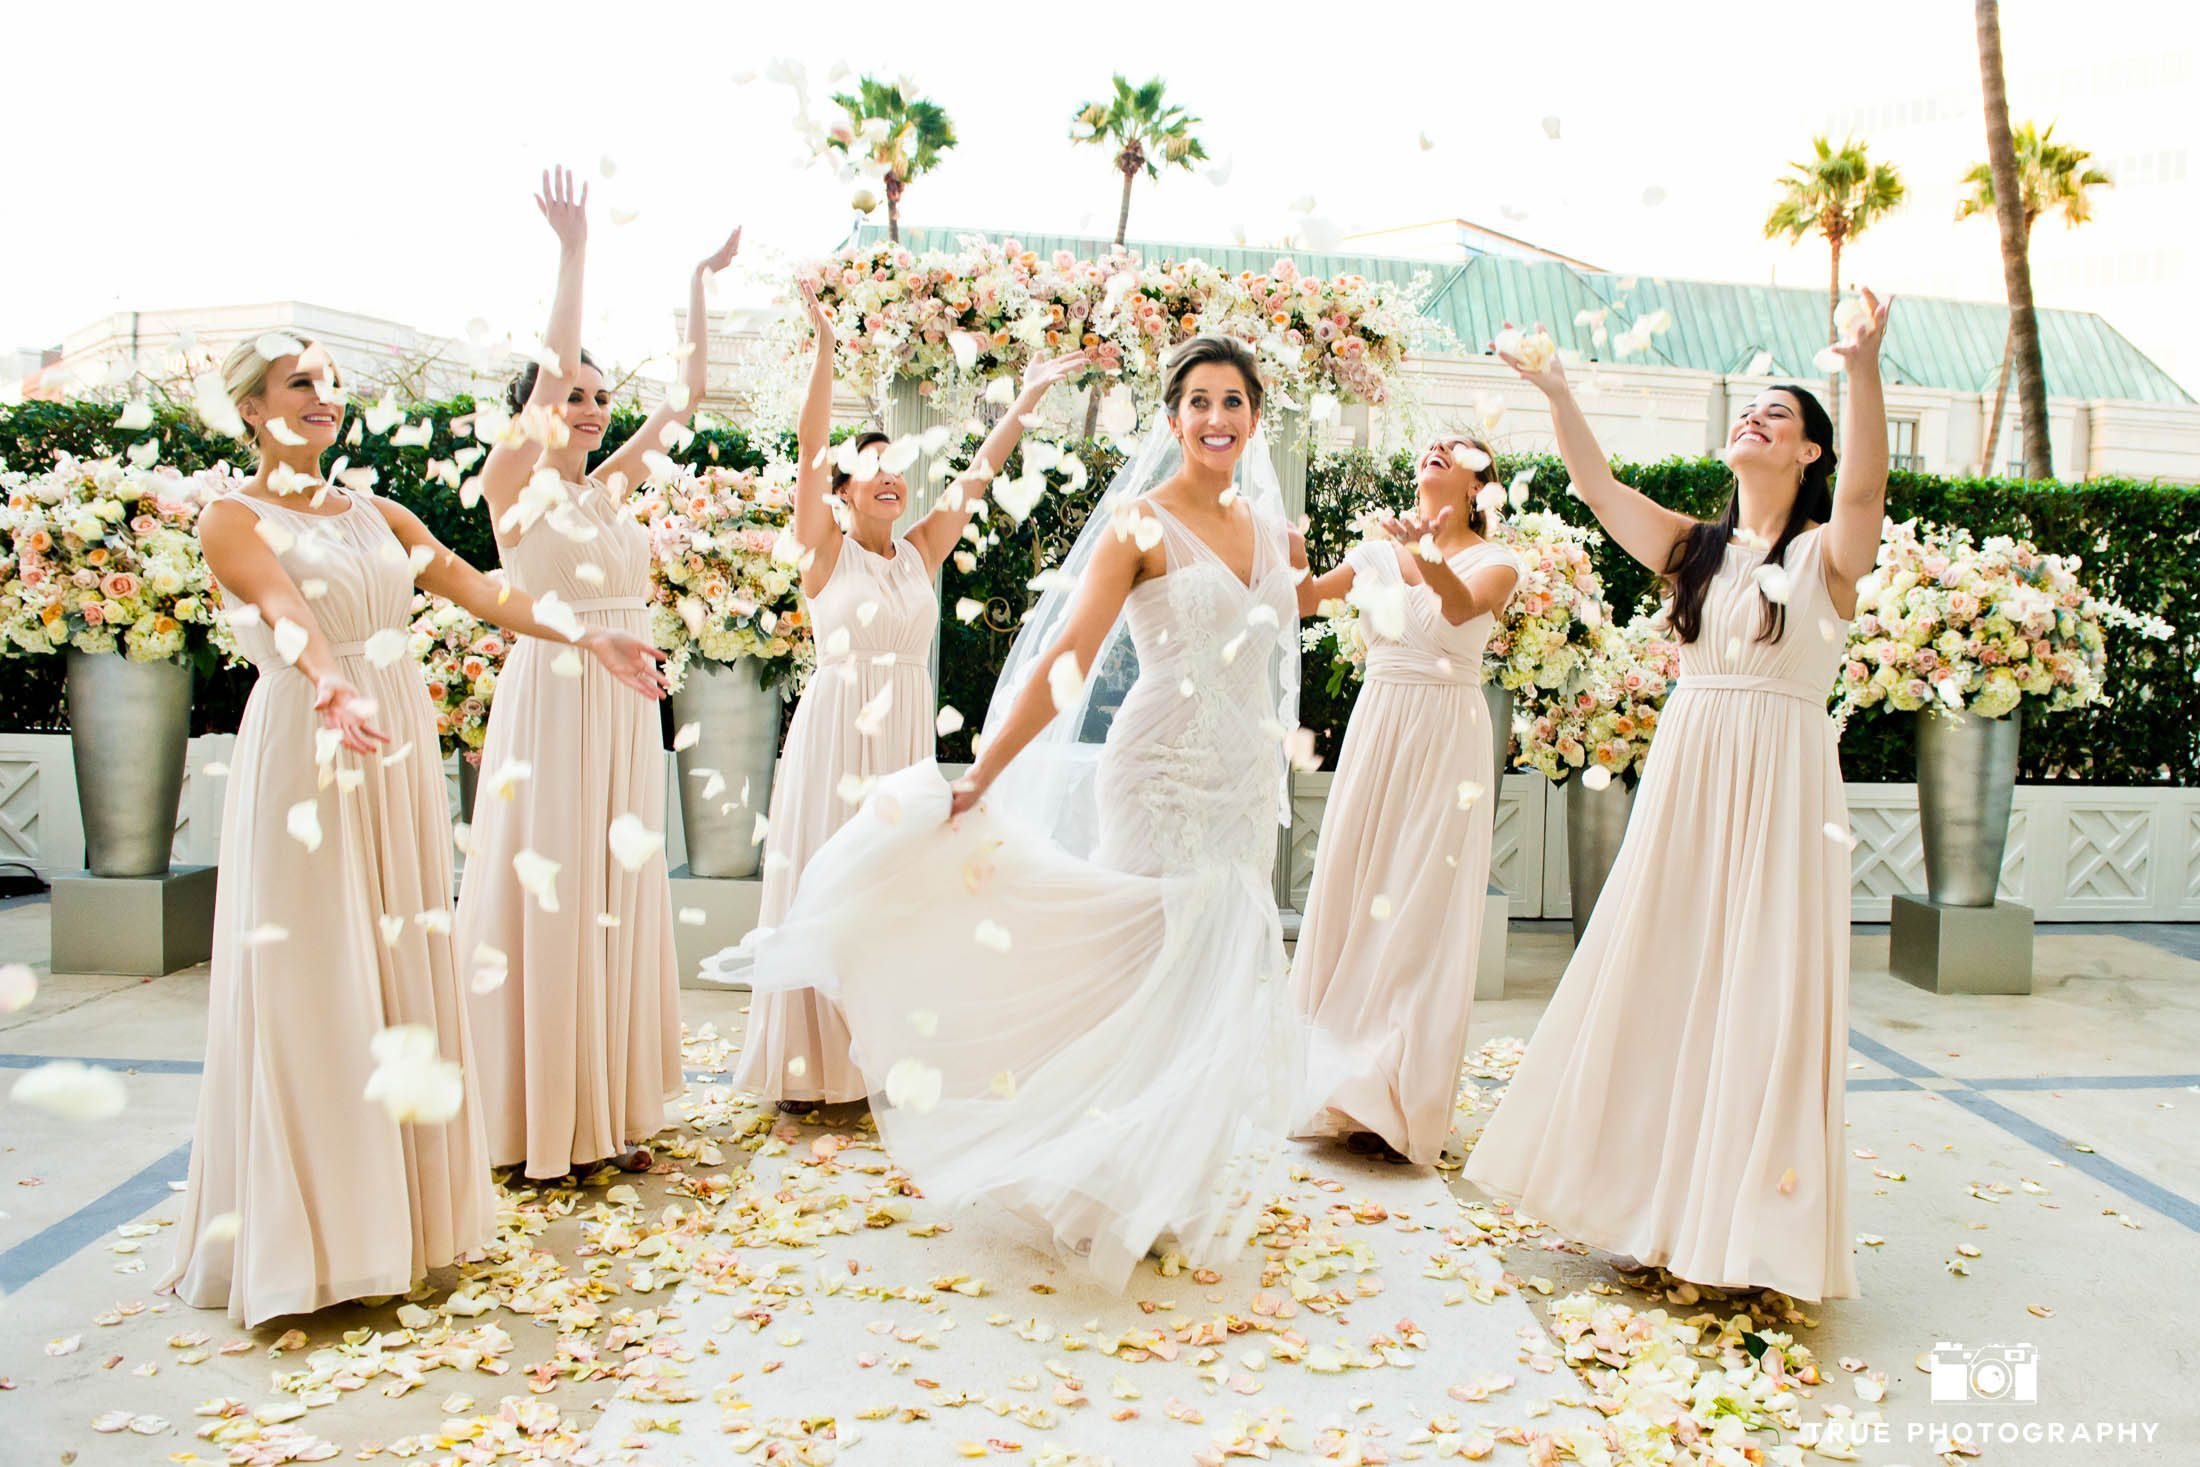 Bridesmaids throw rose petals around Bride after ceremony